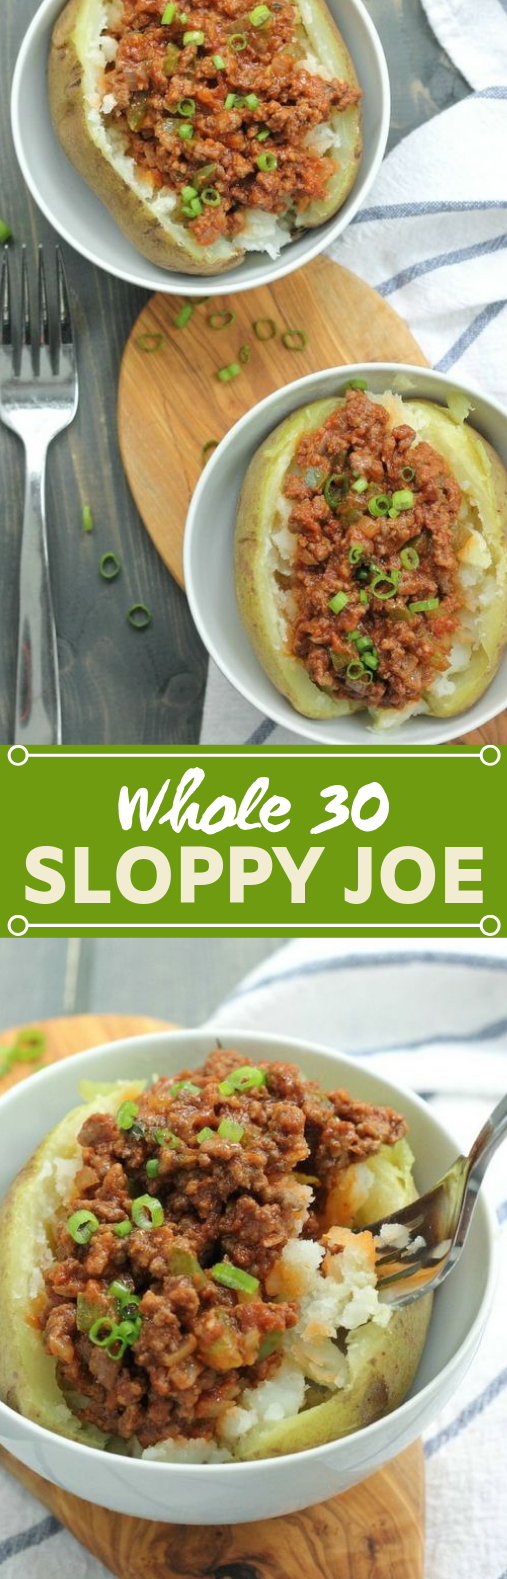 Whole30 Sloppy Joe Bowls #healthy #easy